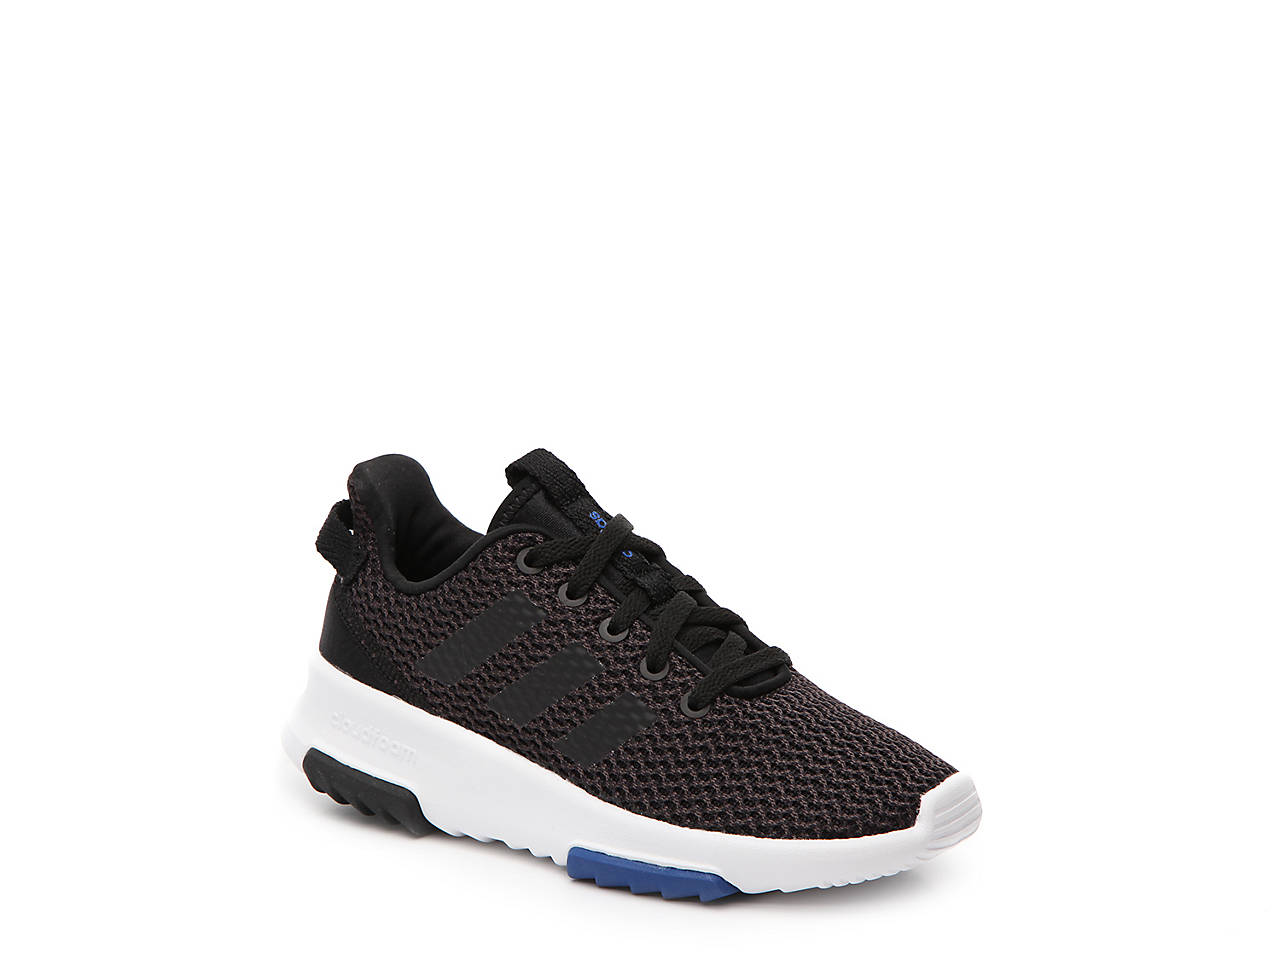 233f457060b adidas Racer TR Toddler   Youth Sneaker Kids Shoes